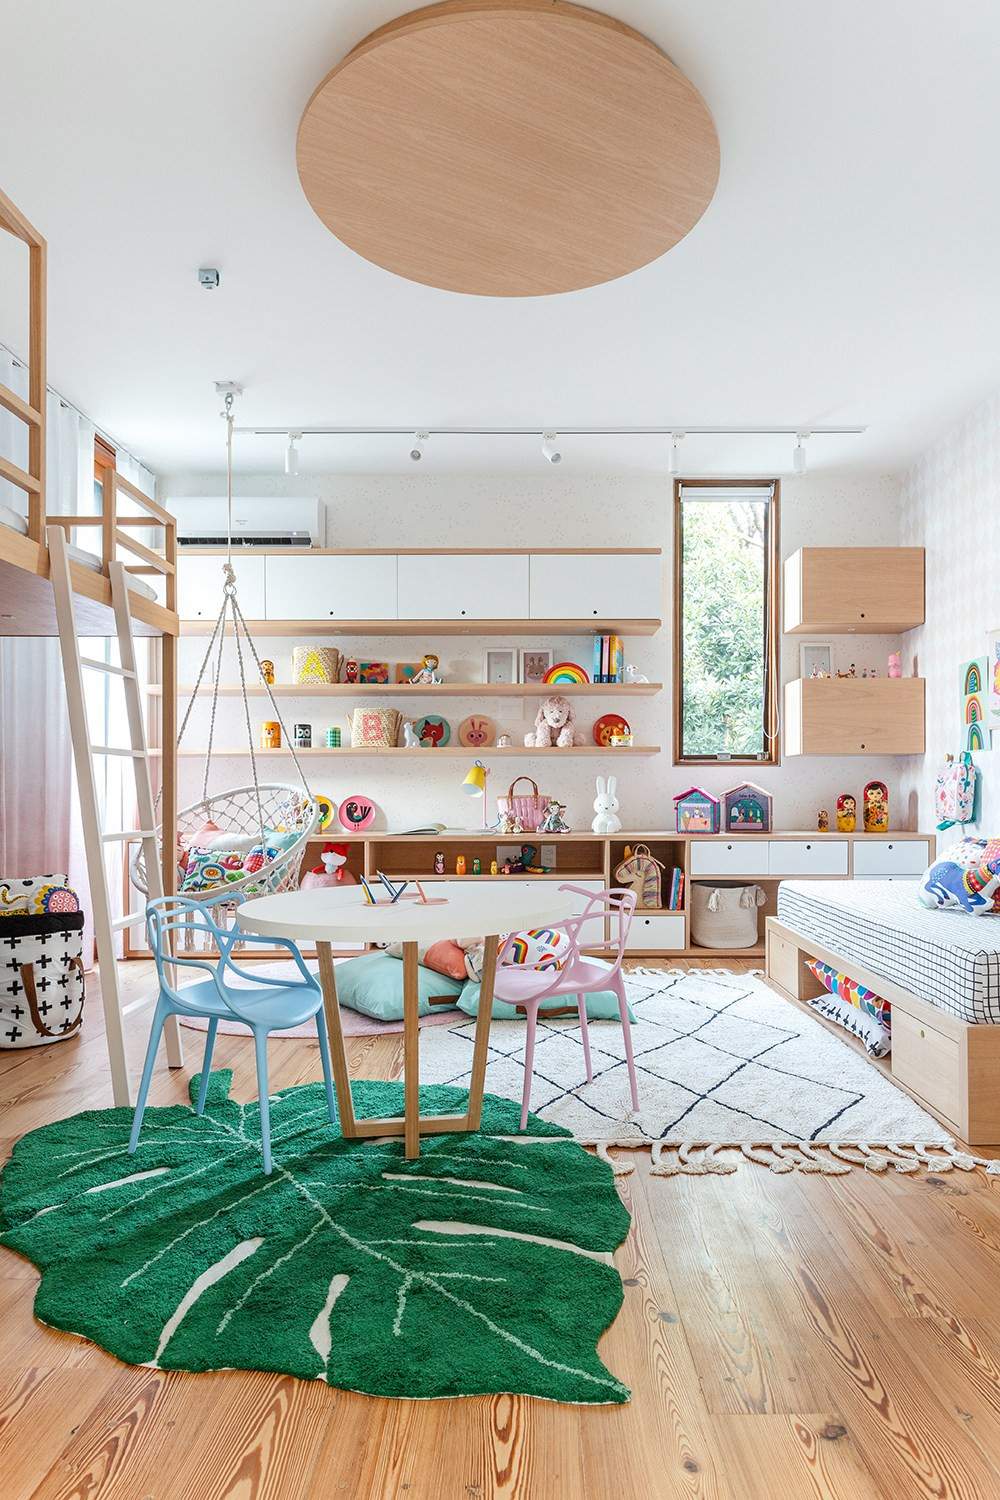 A modern scandinavian neutral childrens rooms with white walls, simple shelving and storage, a bunk bed with white craft table and green leaf area rug as well as white diamond floor rug